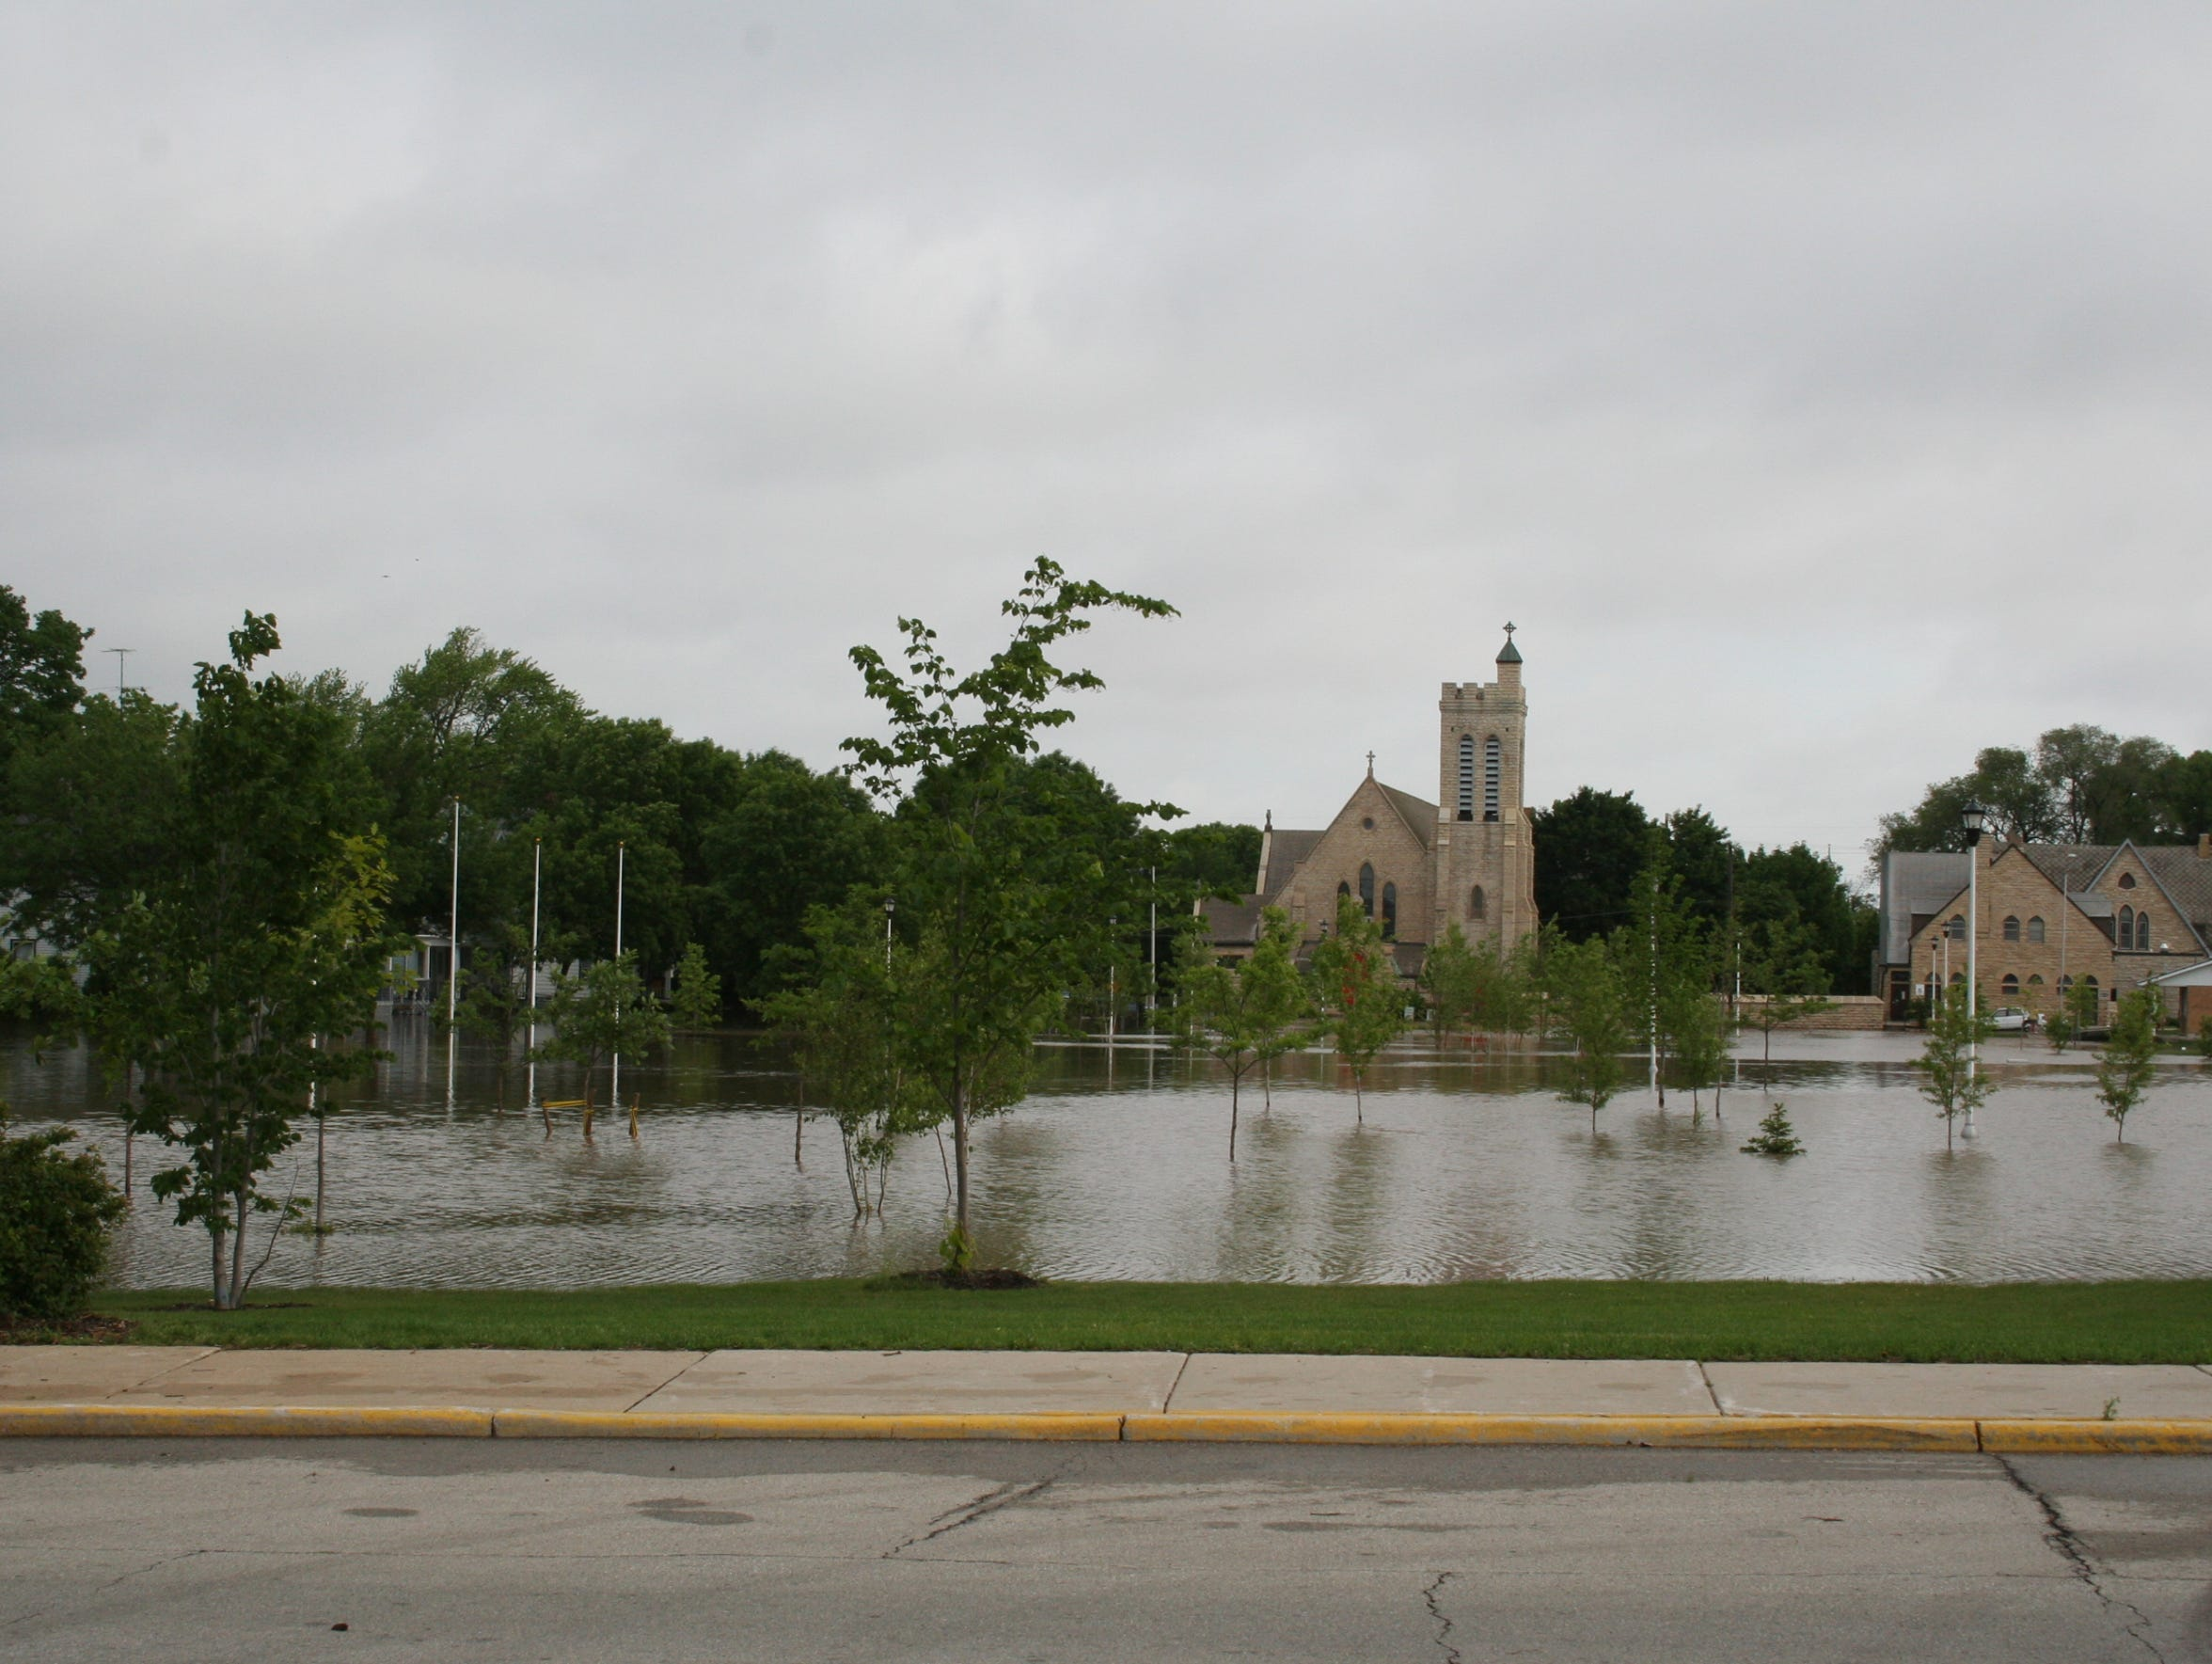 Flood waters fill Hamilton Park between Division Street